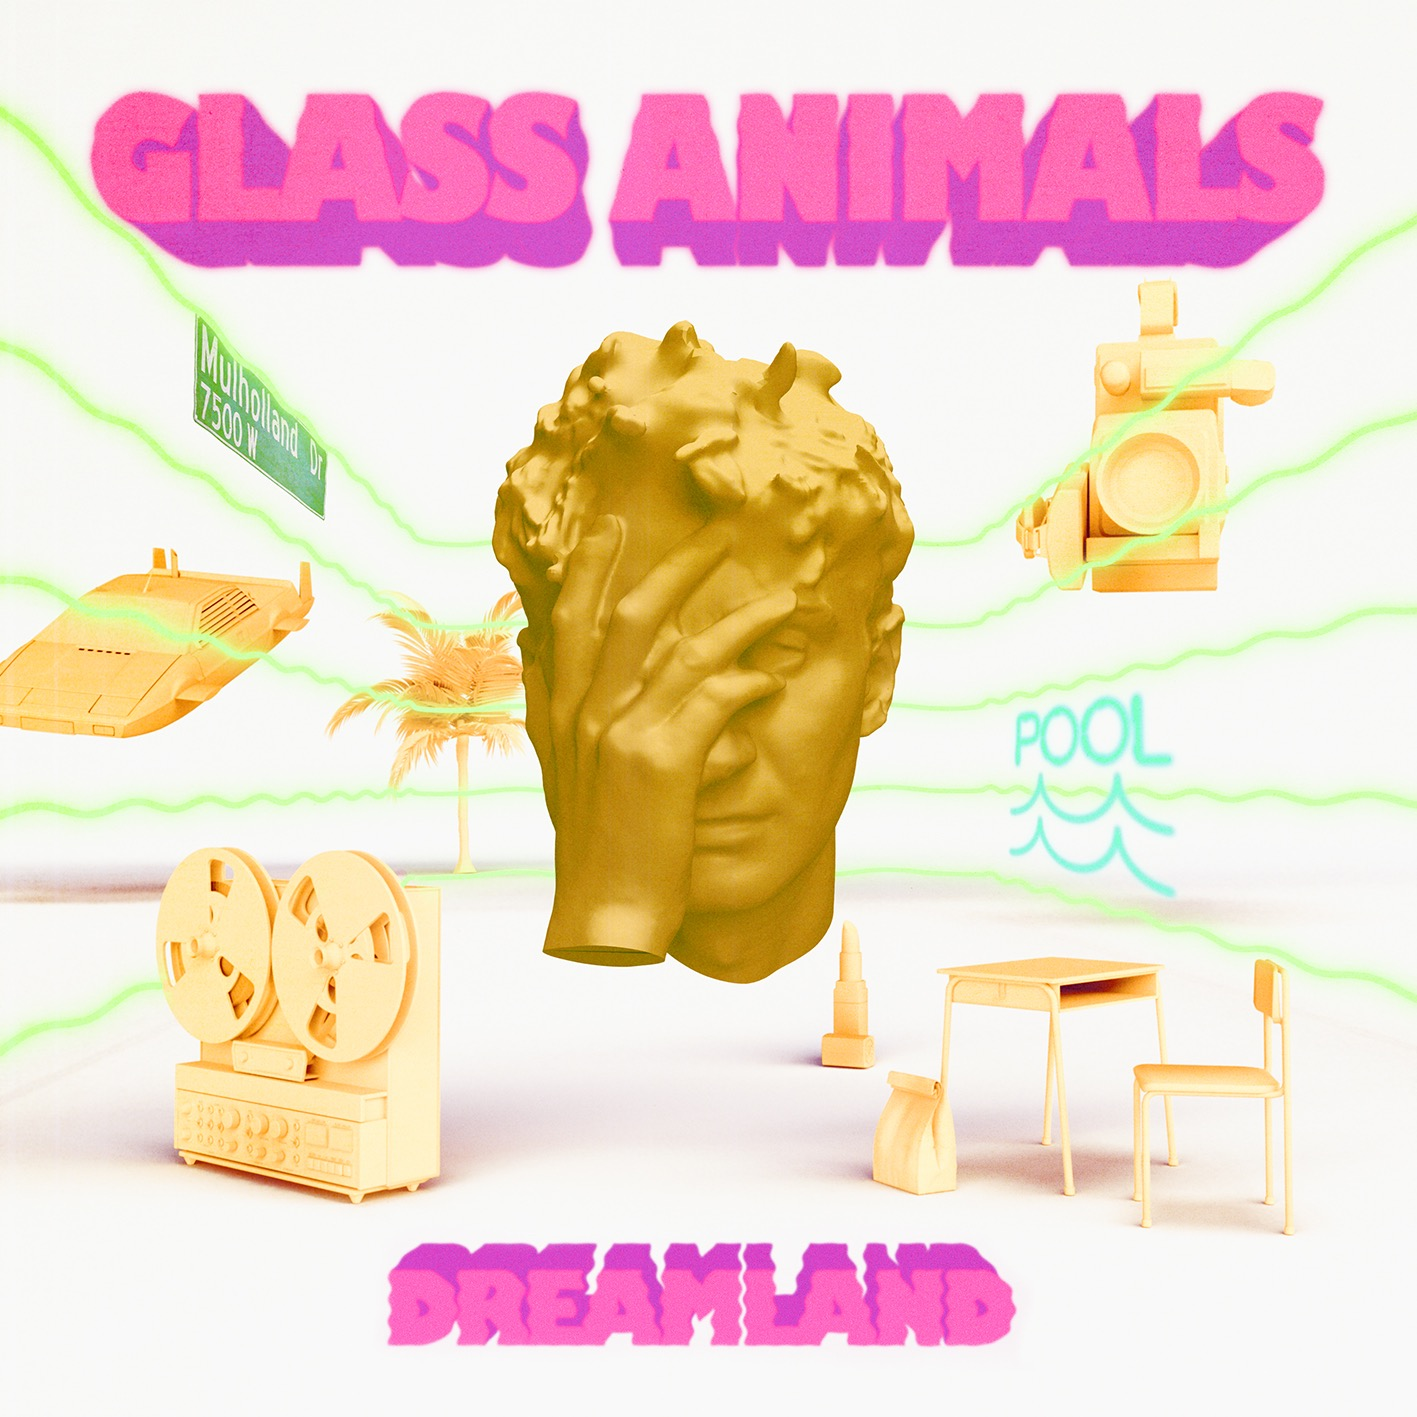 Dreamland - Glass Animals